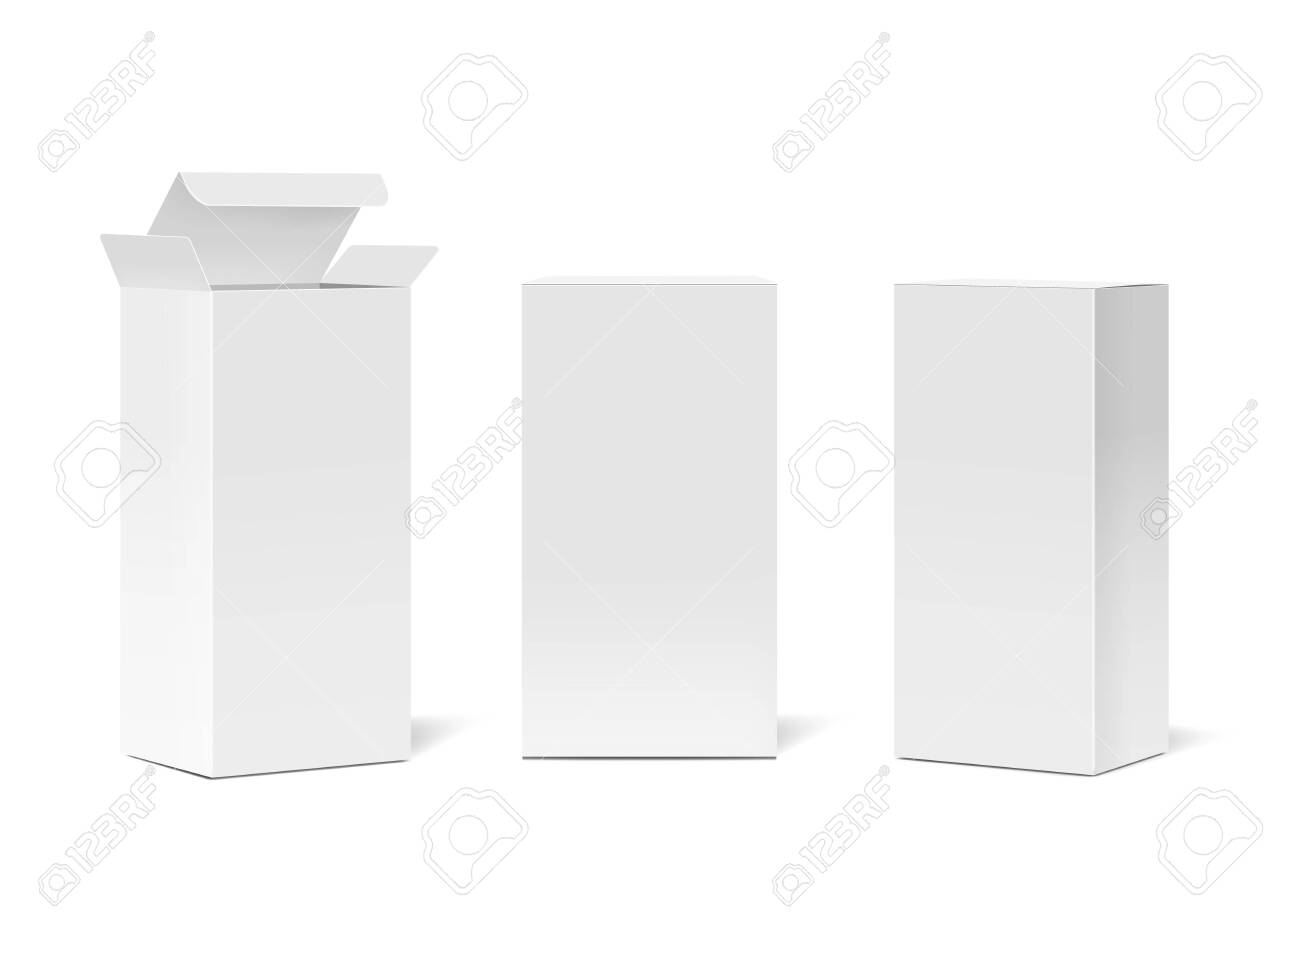 Realistic cardboard boxes mockup set. Cosmetic or medical blank white packaging front and perspective views. Vector illustration - 139093772